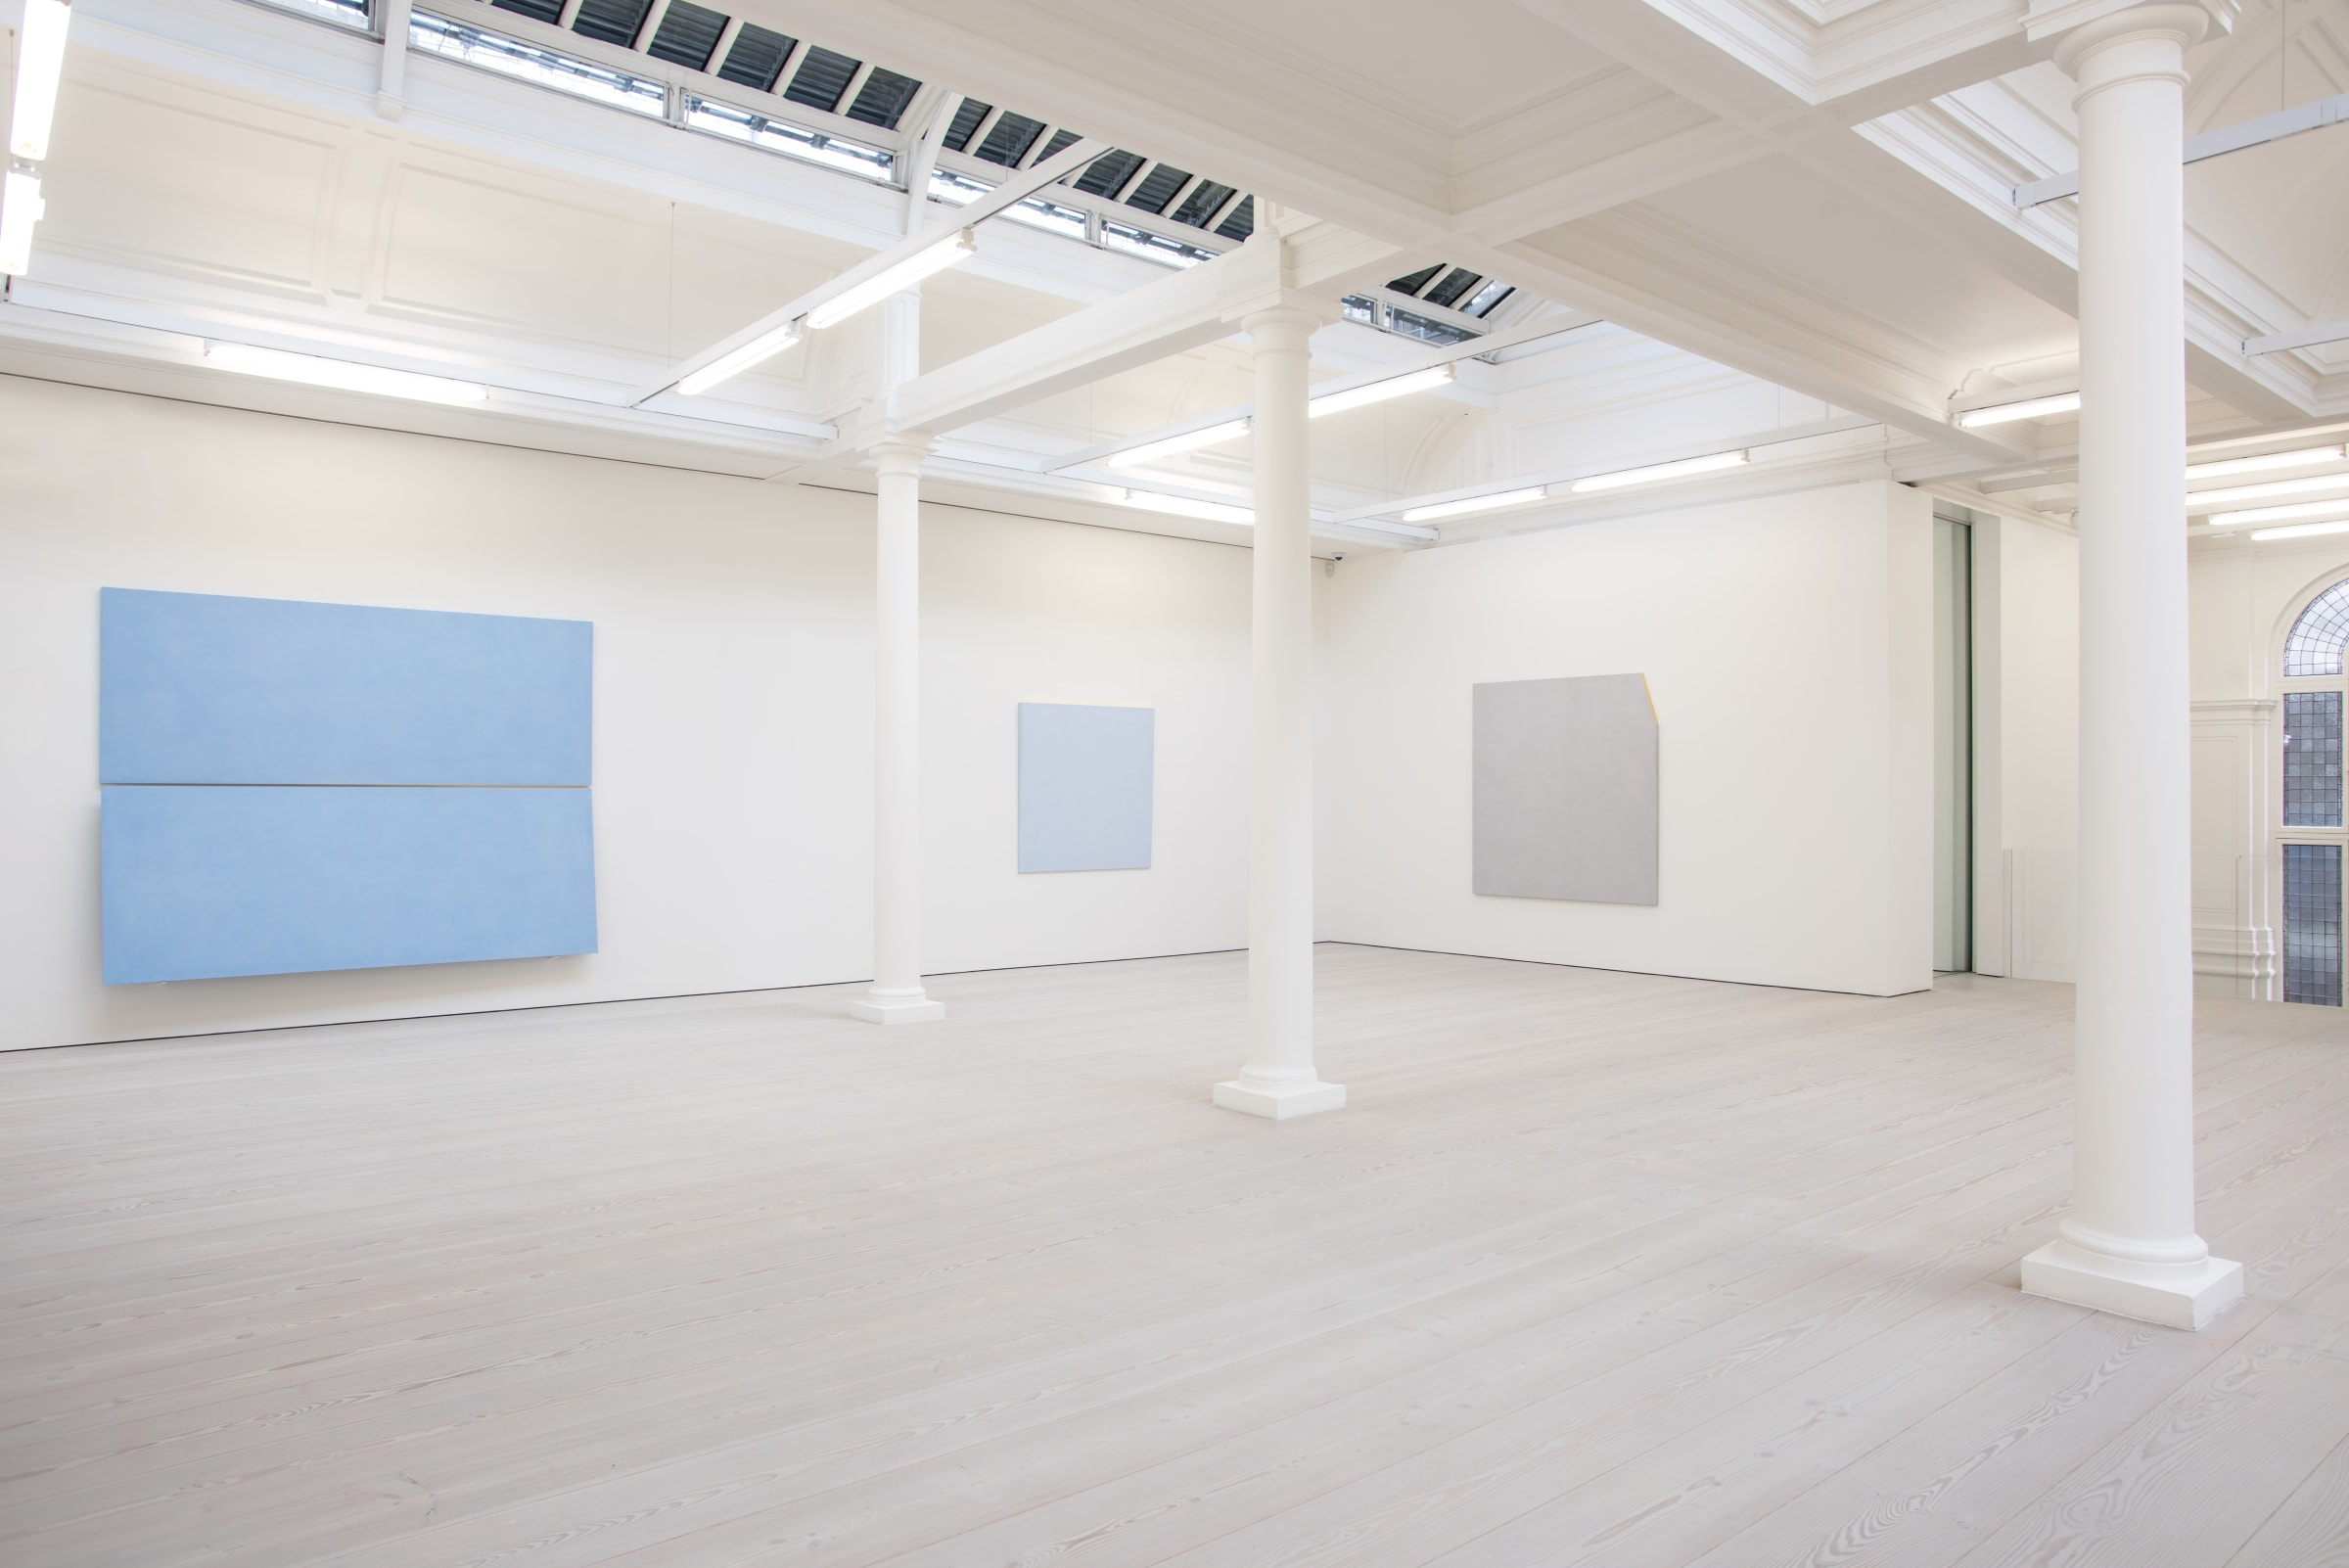 In a large white space with columns, two large light blue paintings hang, with one light grey painting.